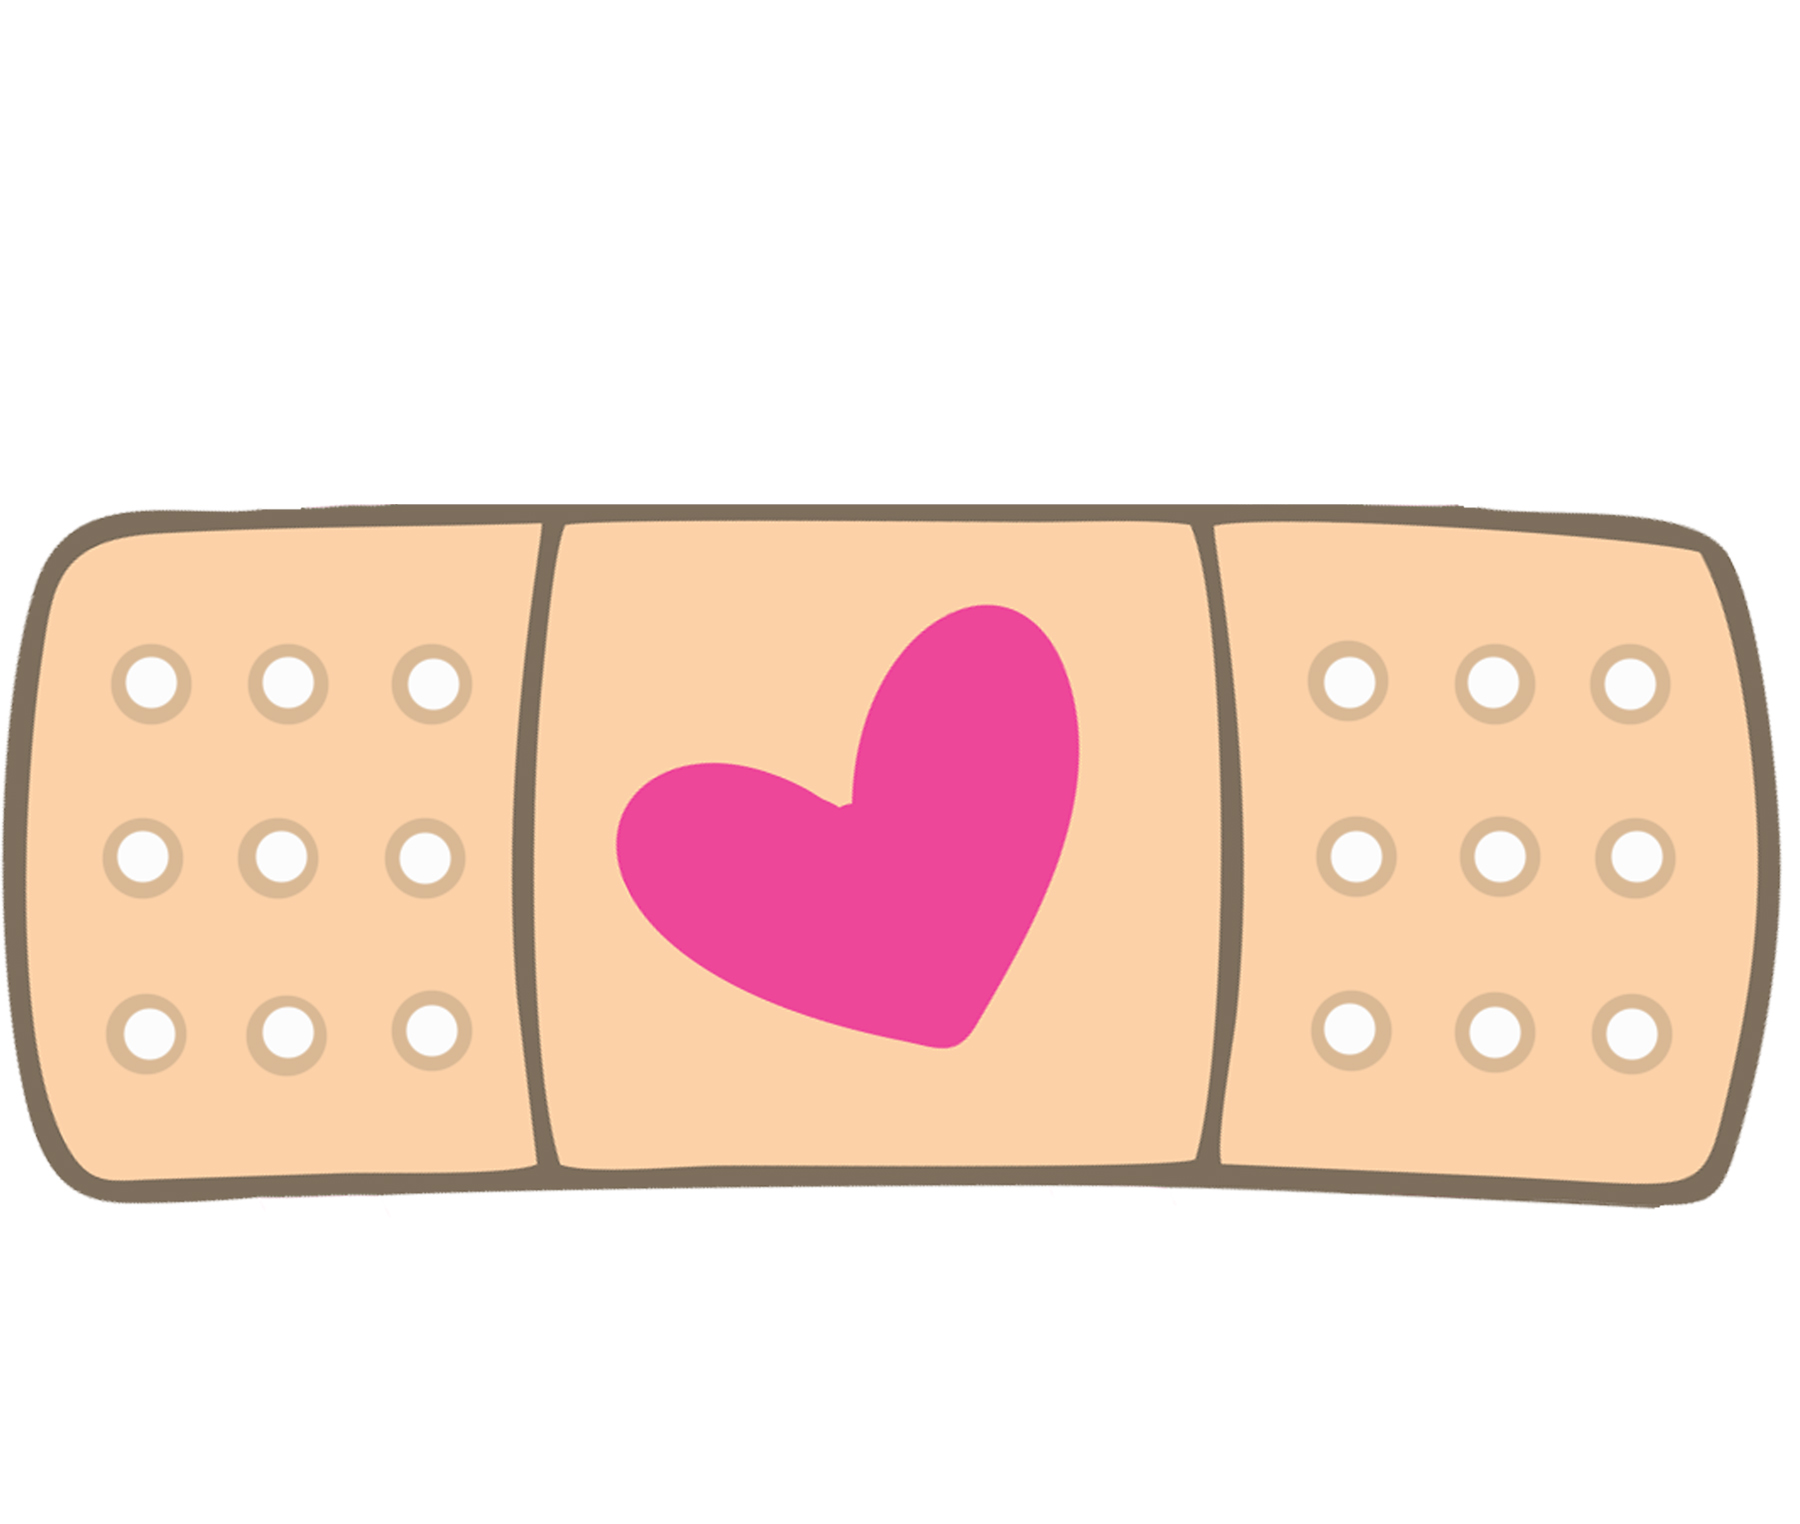 Free Bandage Cliparts, Download Free Clip Art, Free Clip Art.